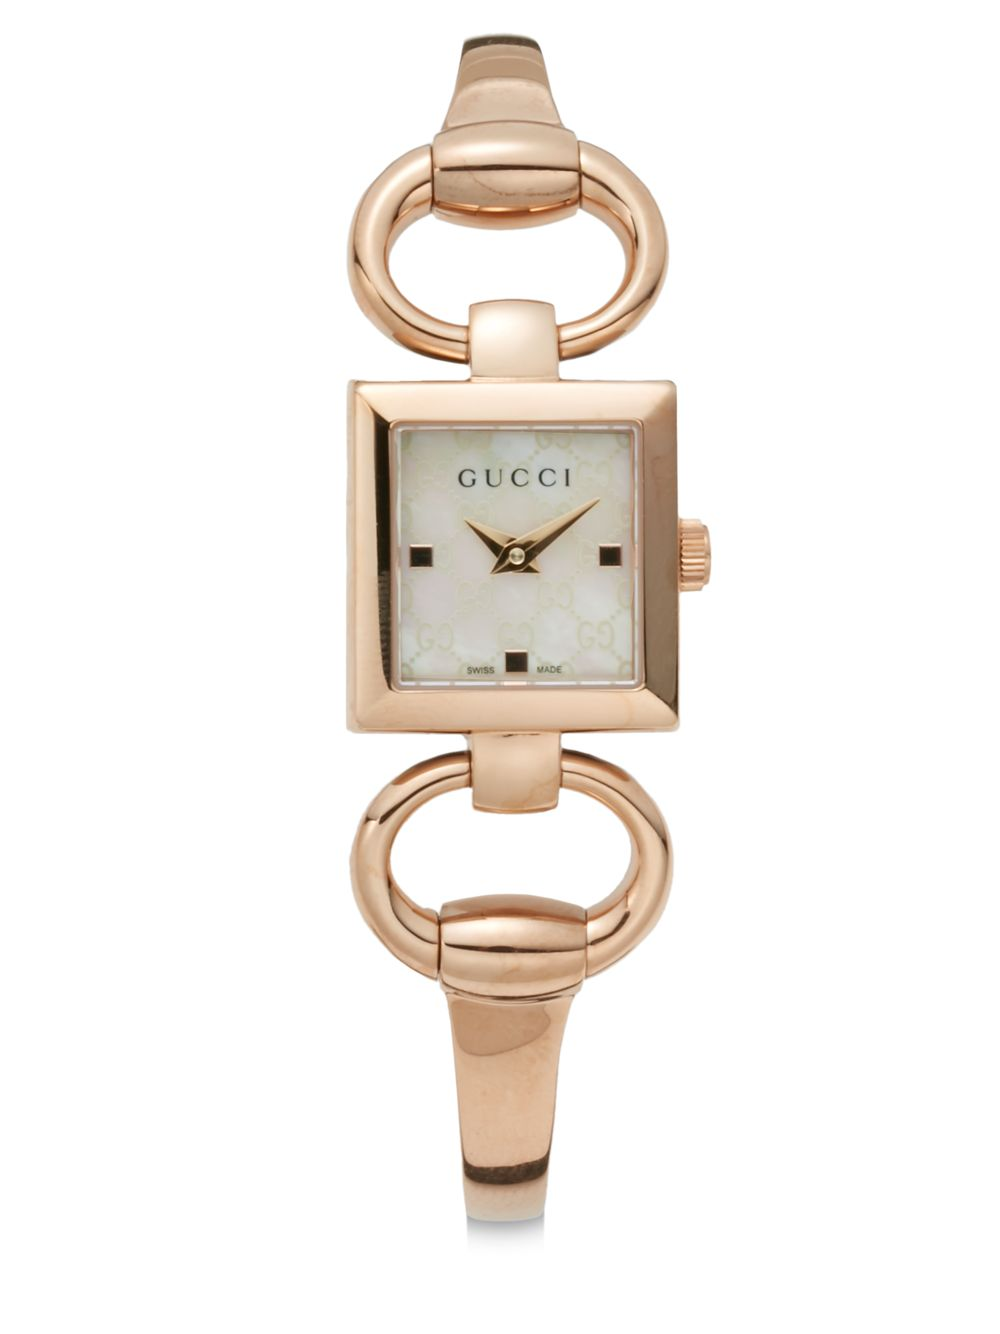 Gucci Rose Gold Ladies Watch Gucci Pink Gold Watch Pictures